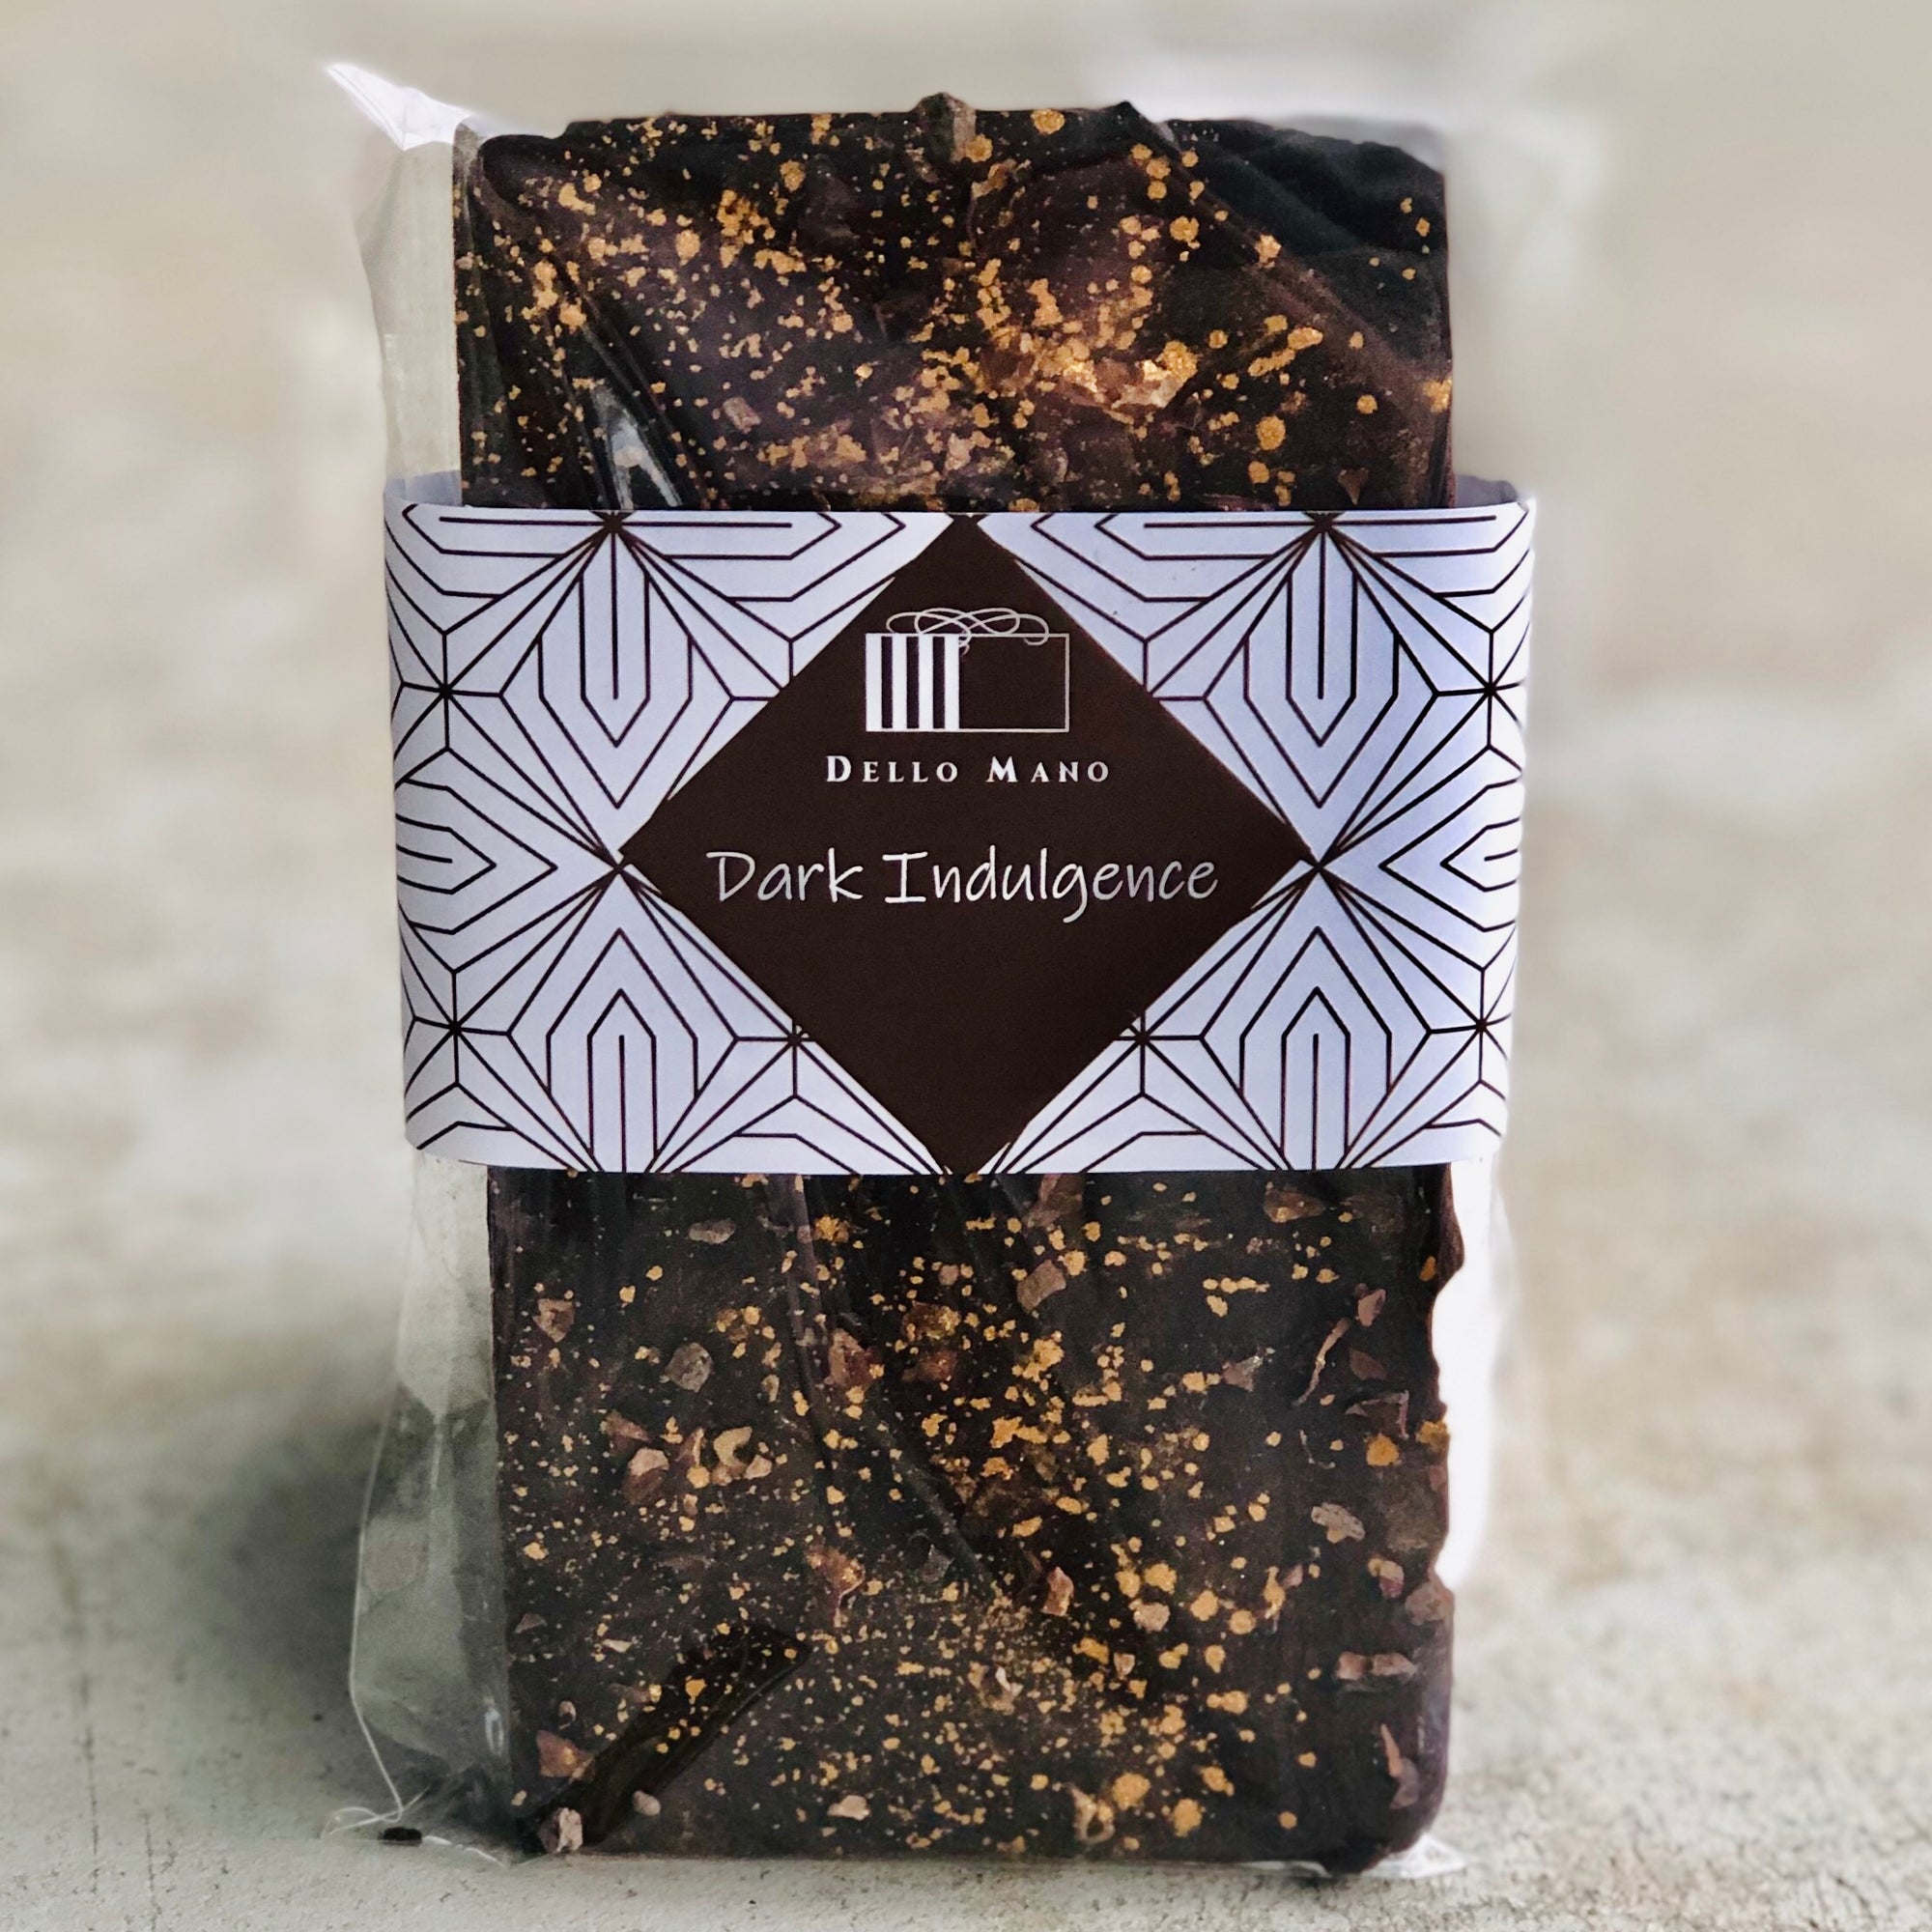 A dark chocolate bar with gold dust and cocoa nibs